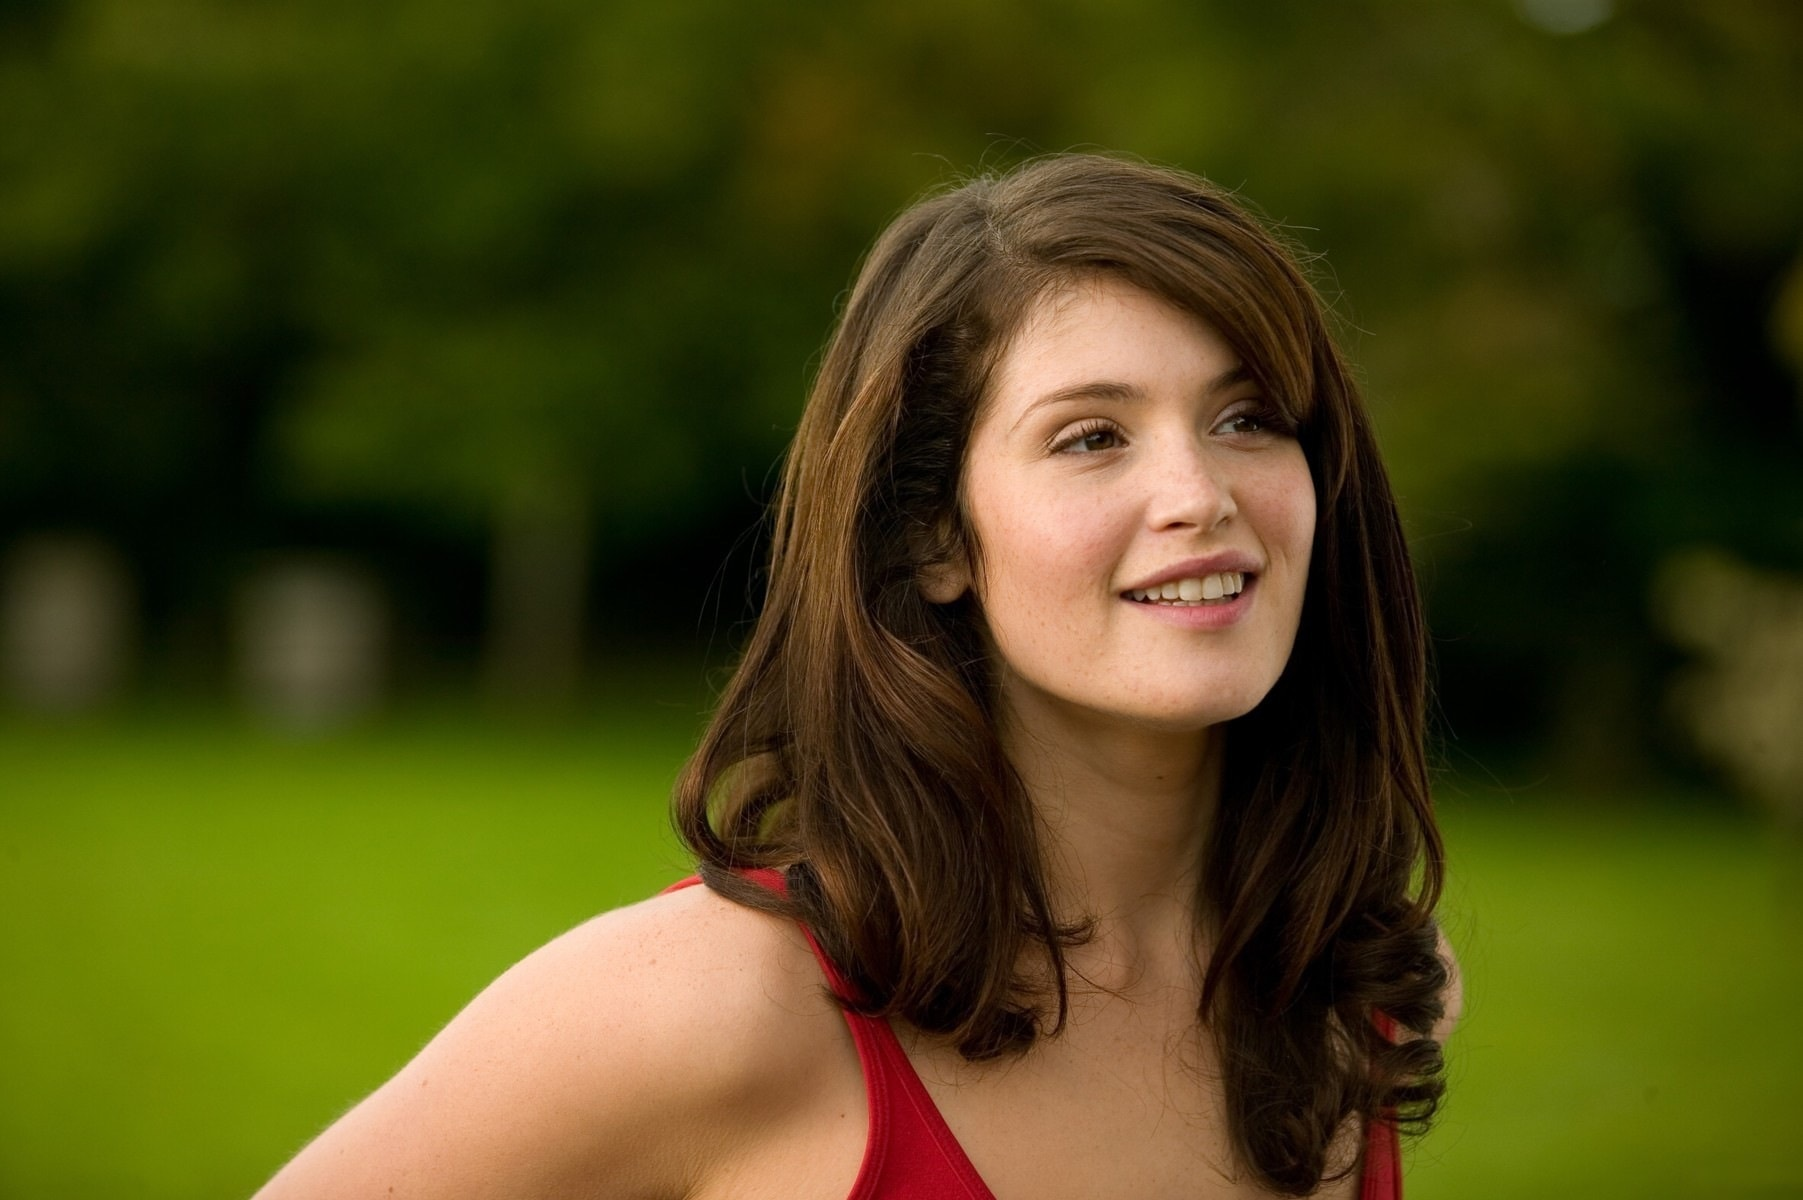 Gemma Arterton Wallpapers hd